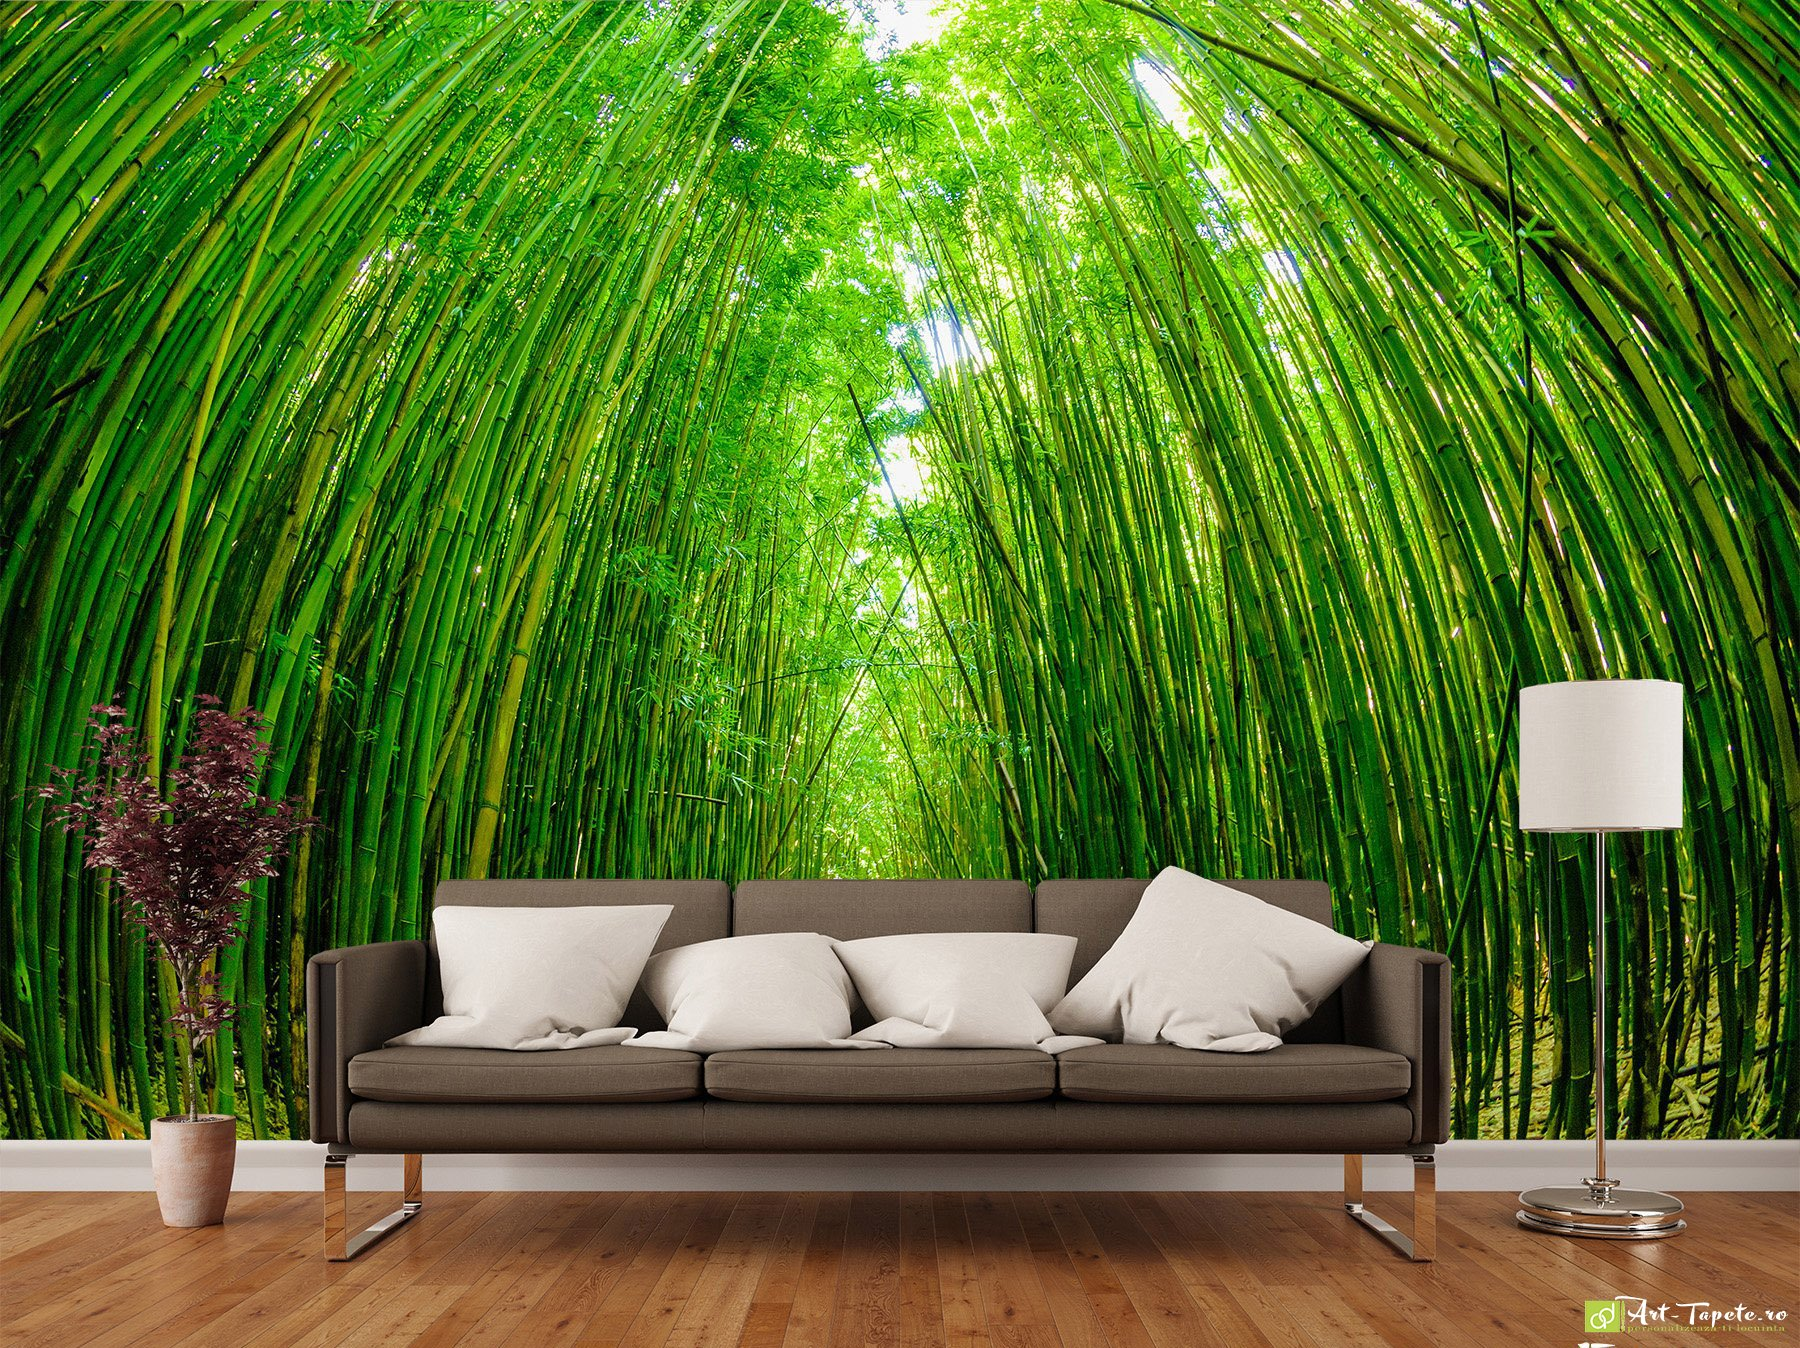 Nature Wallpaper Wall Murals Bamboo Forest2 Fototapetart Eco